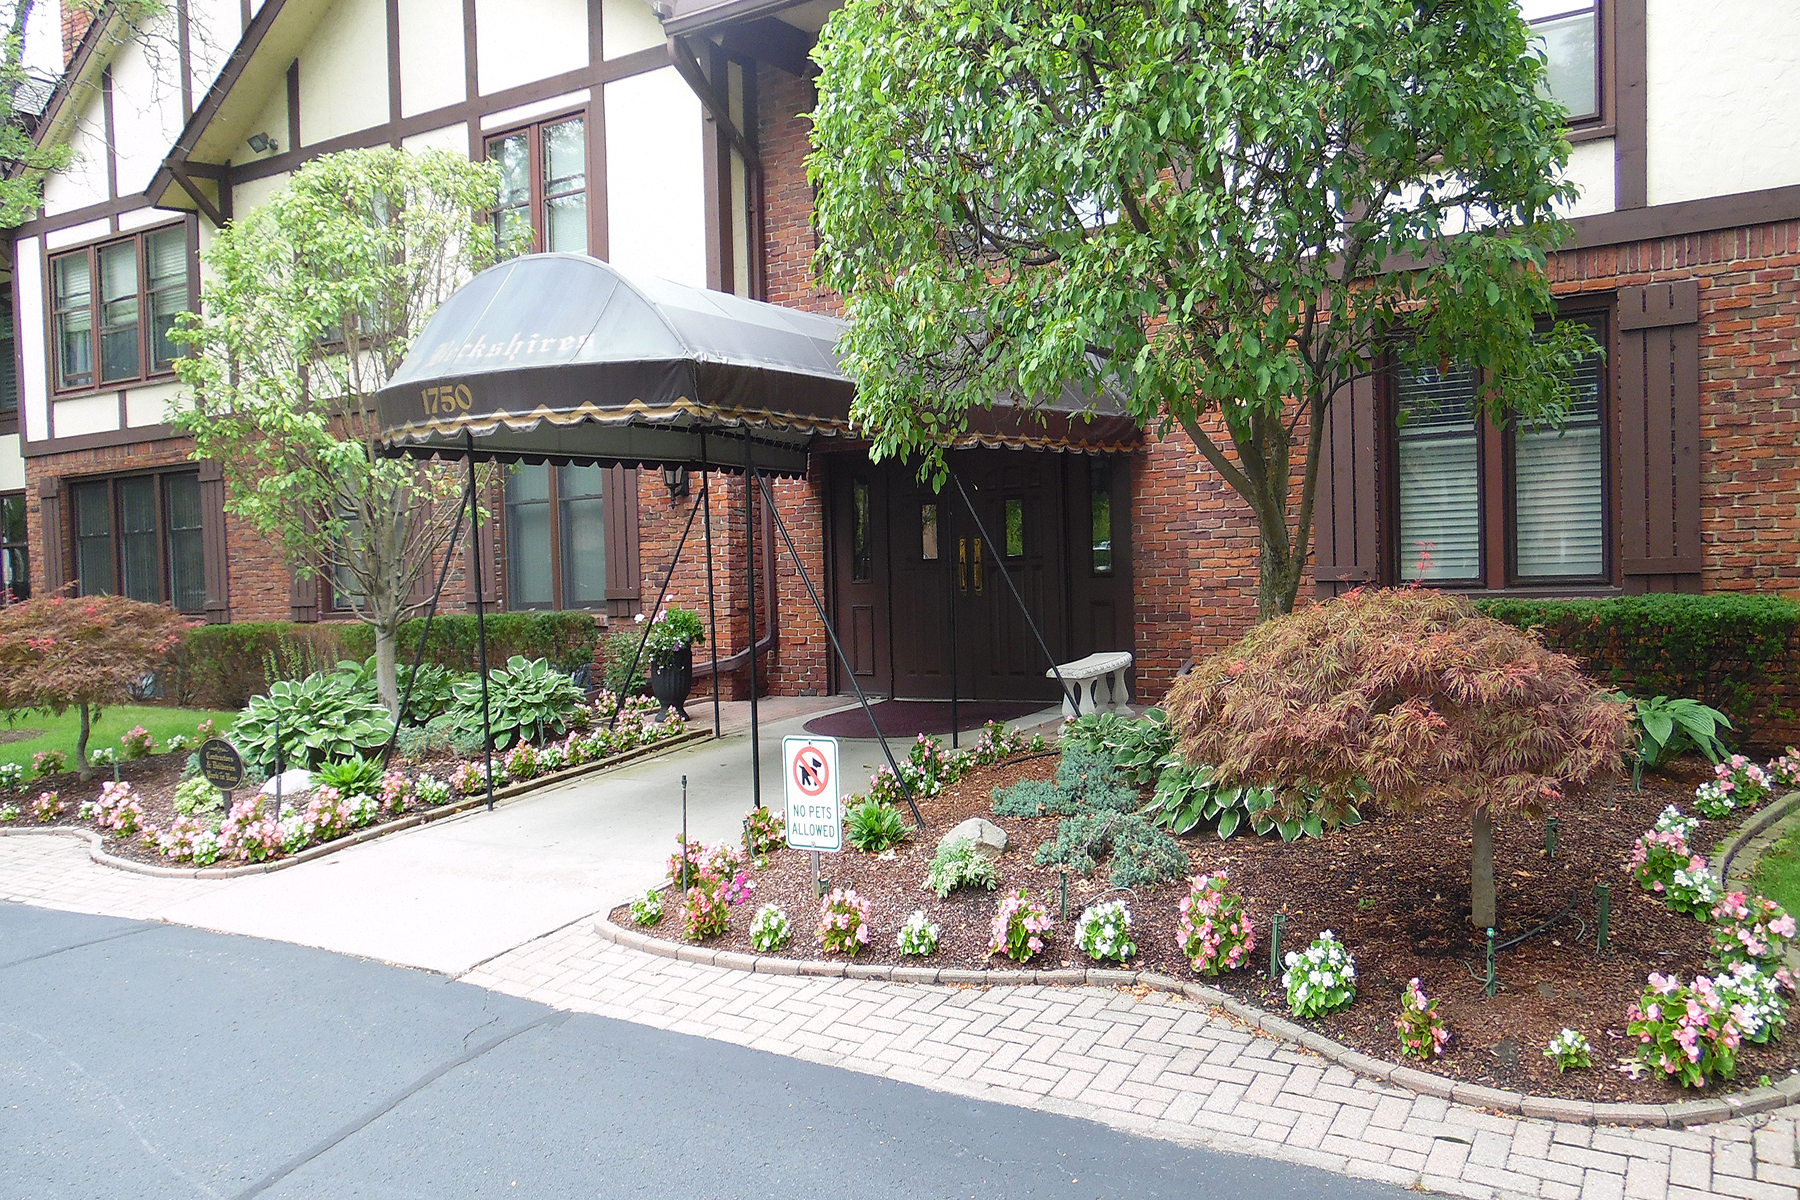 Condominiums 为 销售 在 Grosse Pointe Woods 1750 Vernier Unit #5 Grosse Pointe Woods, 密歇根州 48236 美国